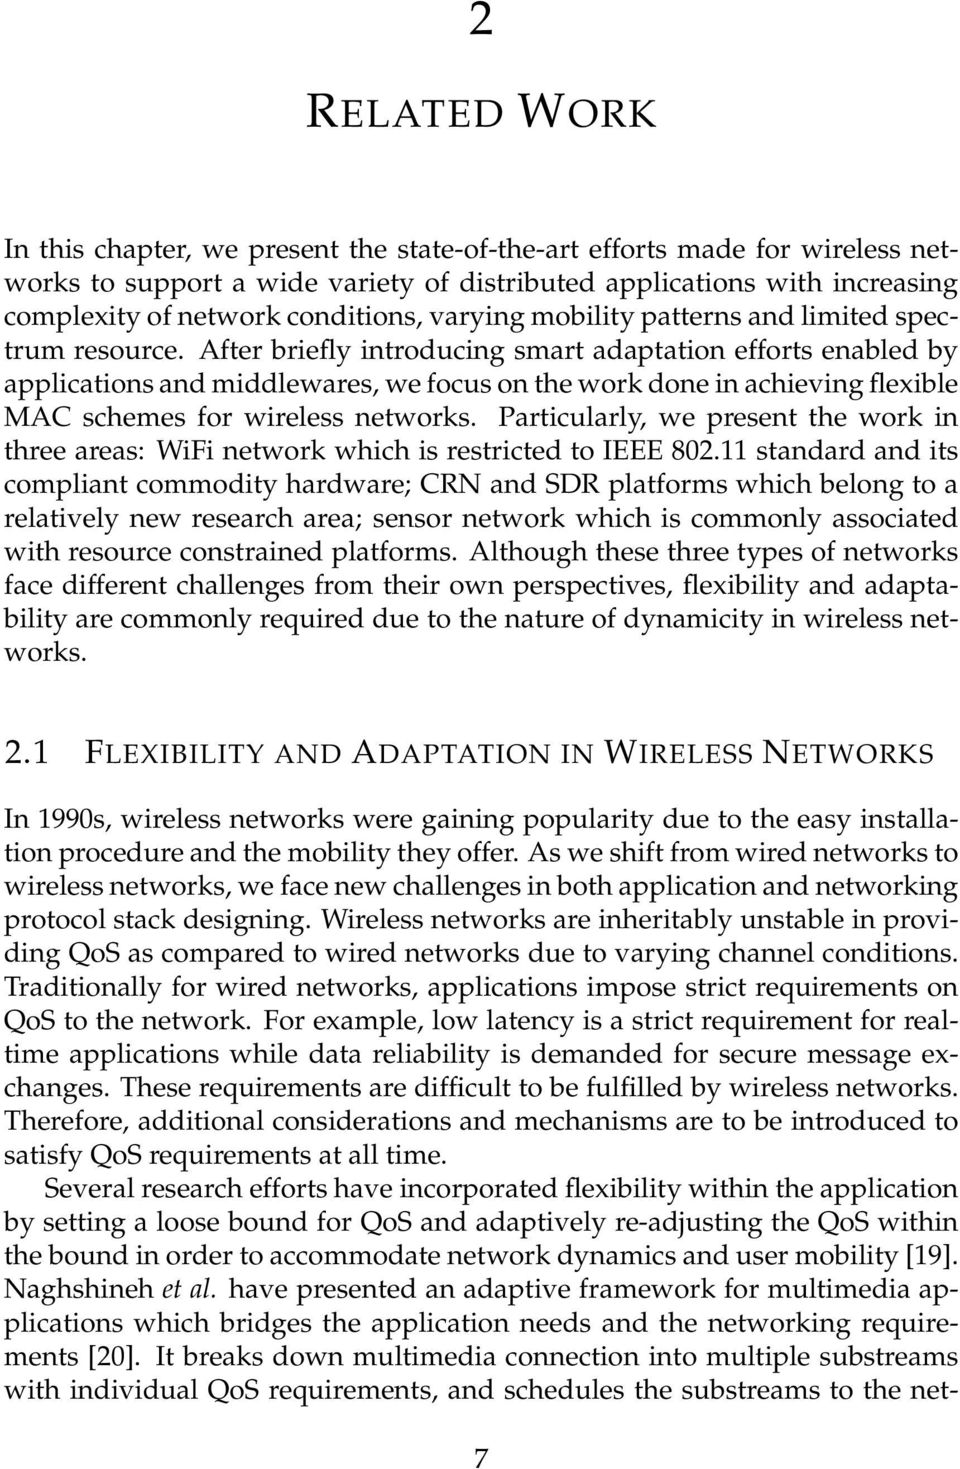 After briefly introducing smart adaptation efforts enabled by applications and middlewares, we focus on the work done in achieving flexible MAC schemes for wireless networks.